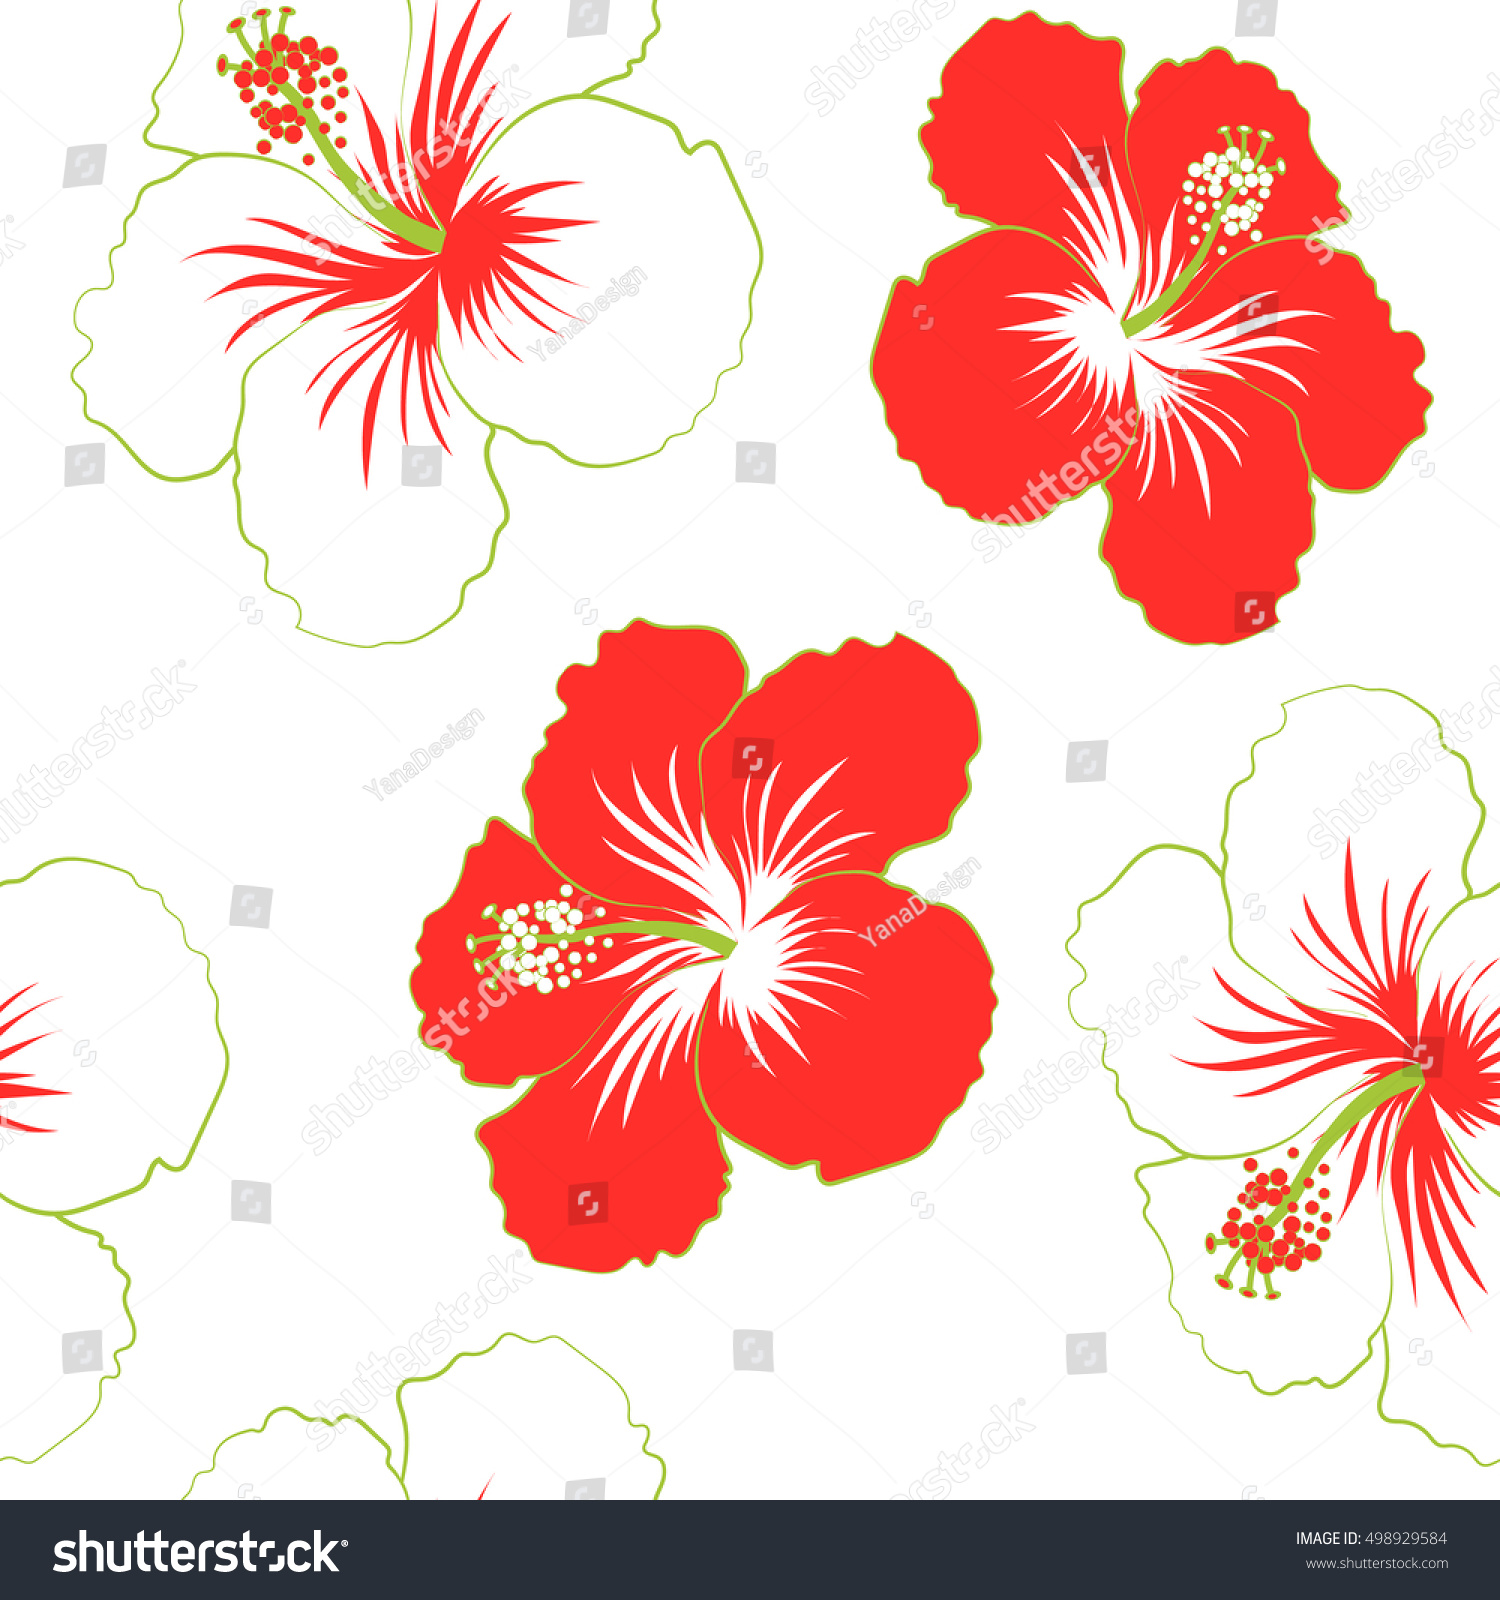 Hibiscus Flowers Red Colors Watercolor Painting Stock Vector ...